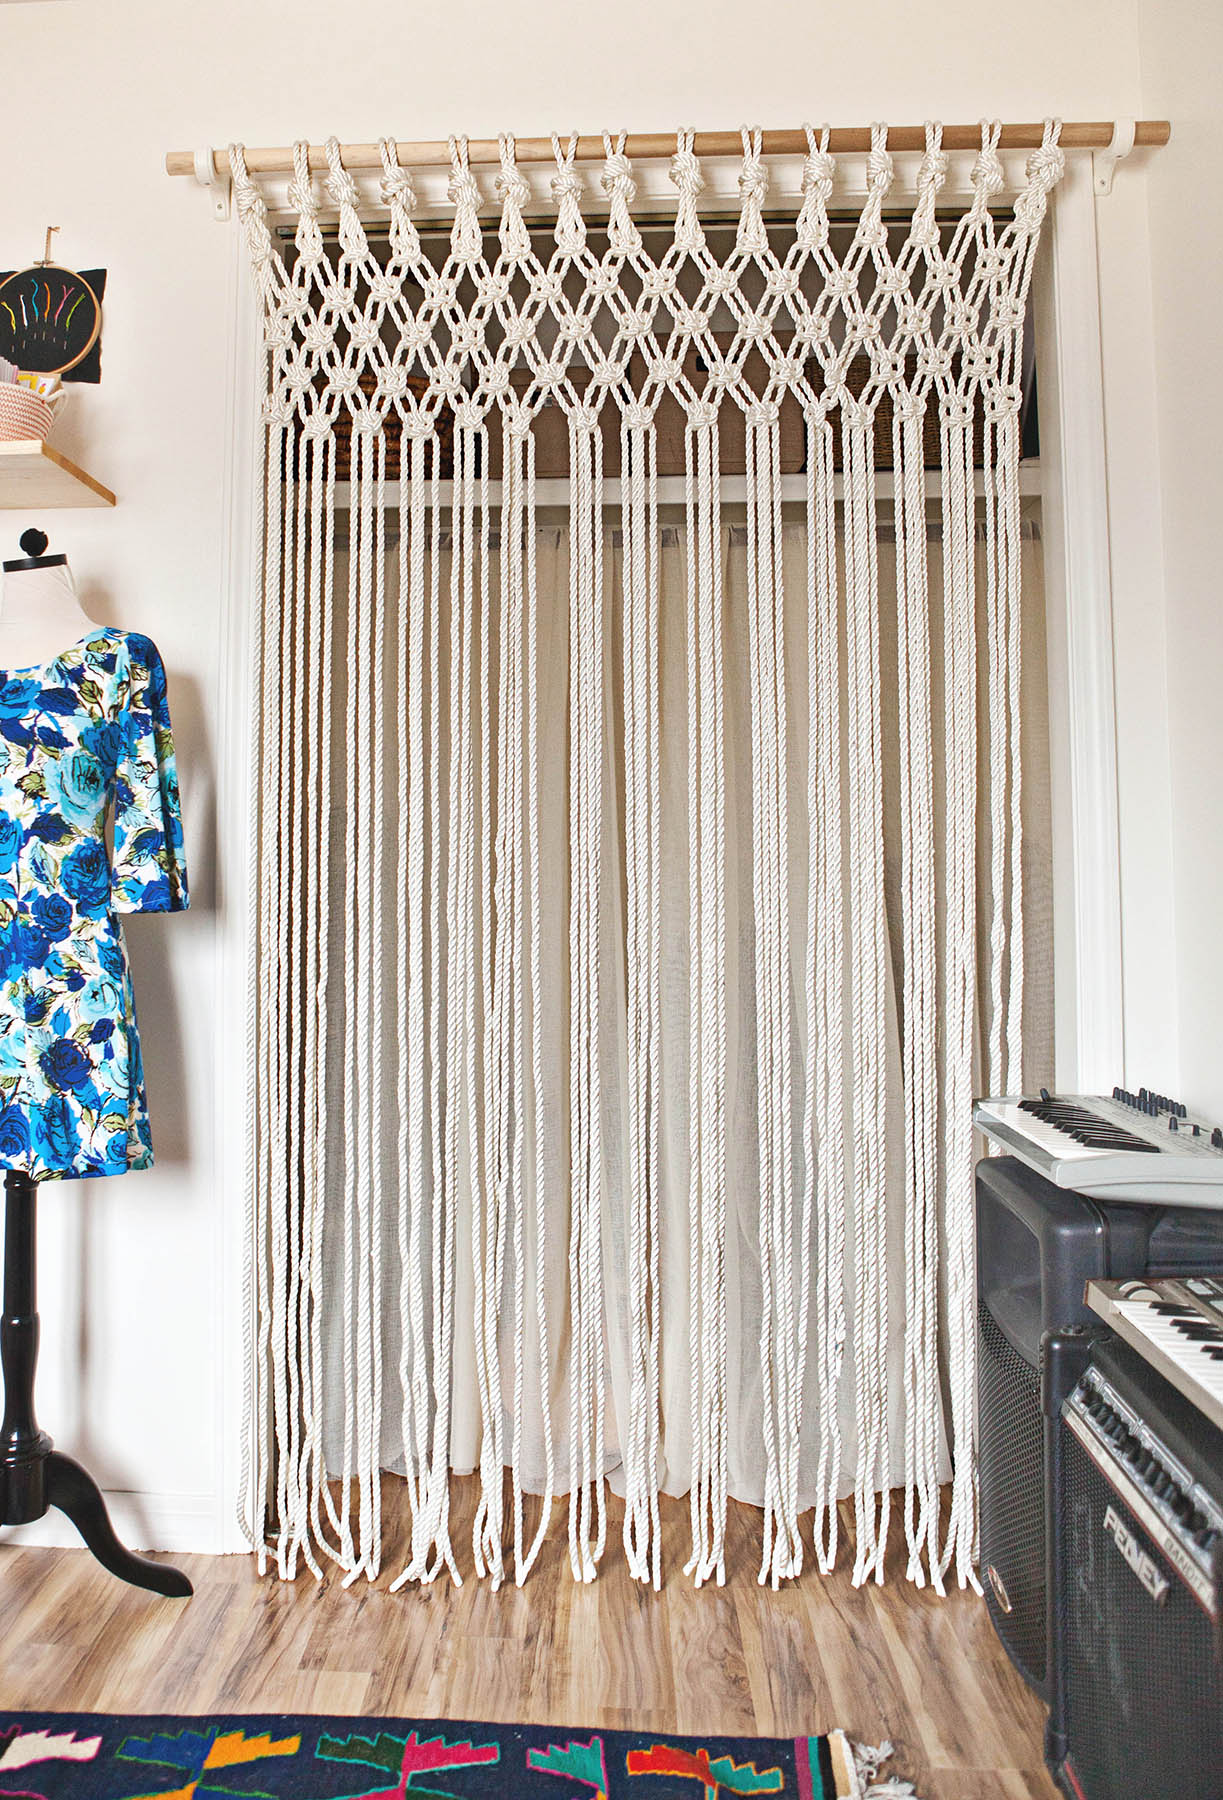 Macrame curtain diy